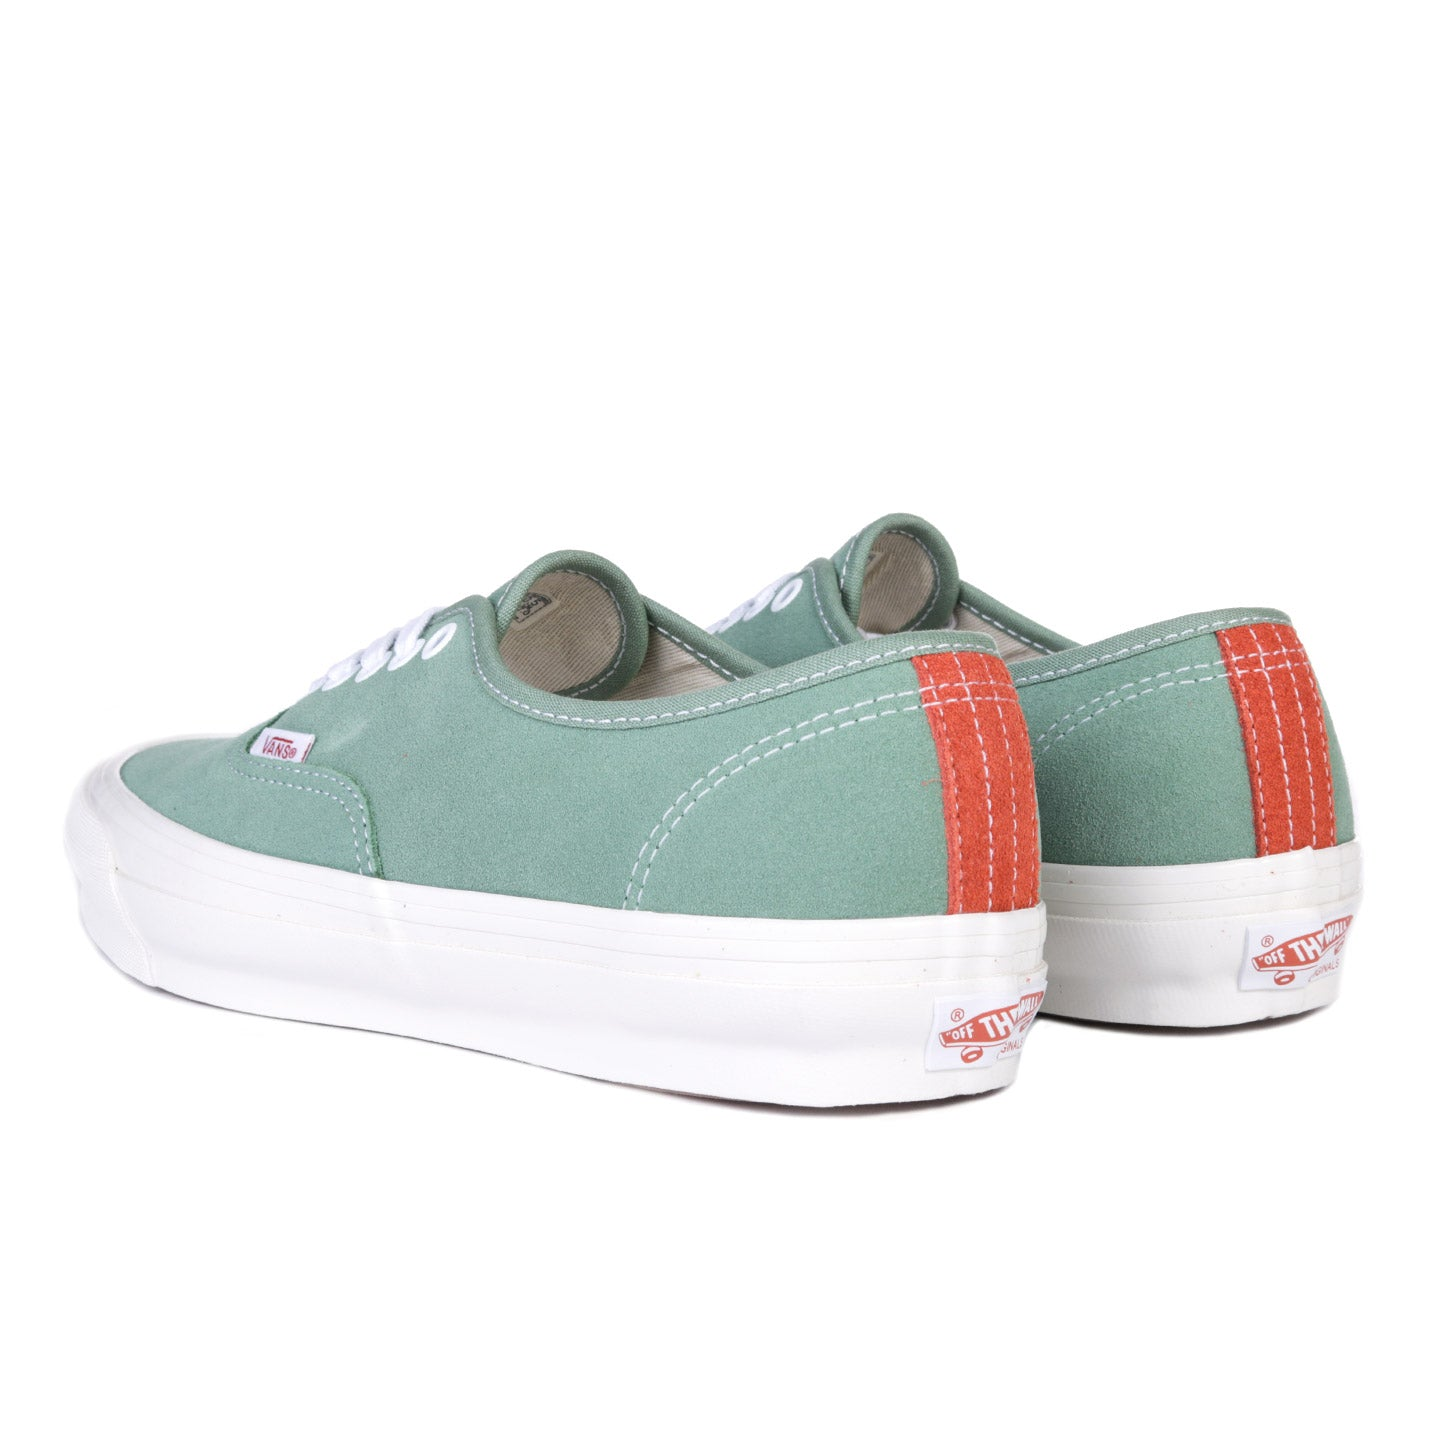 VAULT BY VANS OG ERA LX CHECKERBOARD BLACK